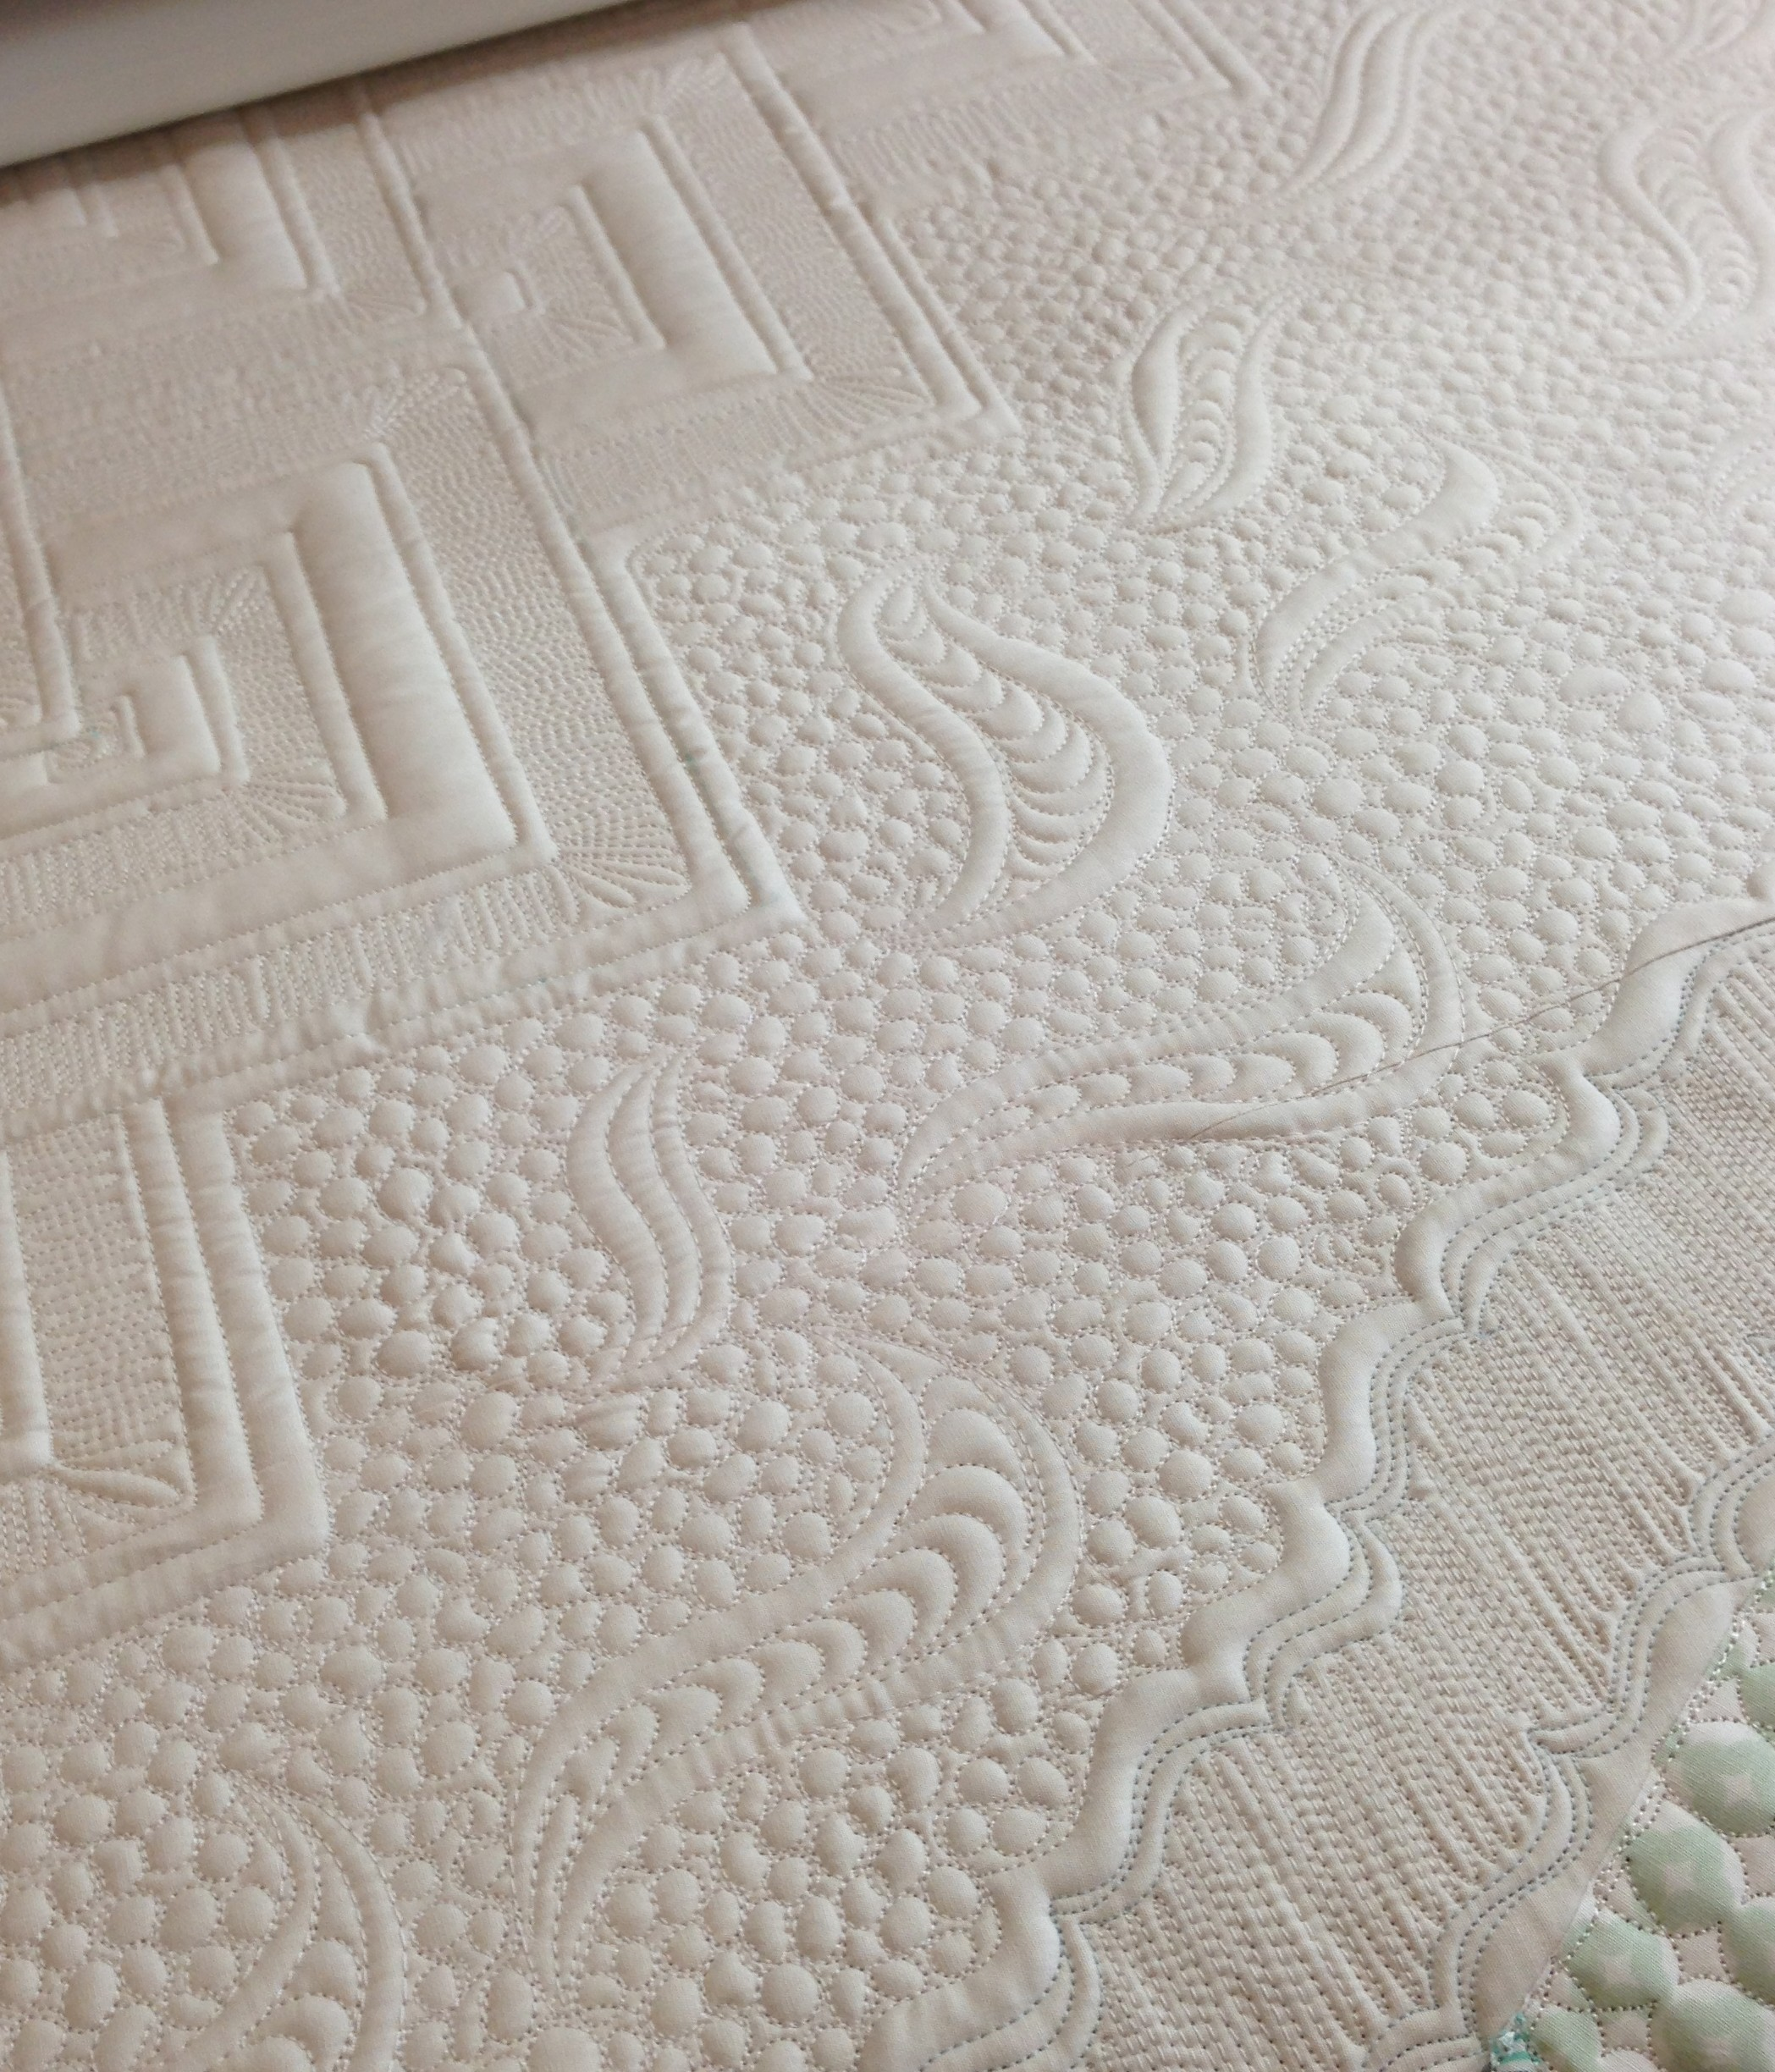 longarm quilting ideas on Pinterest Quilting, Longarm Quilting and Machine Quilting